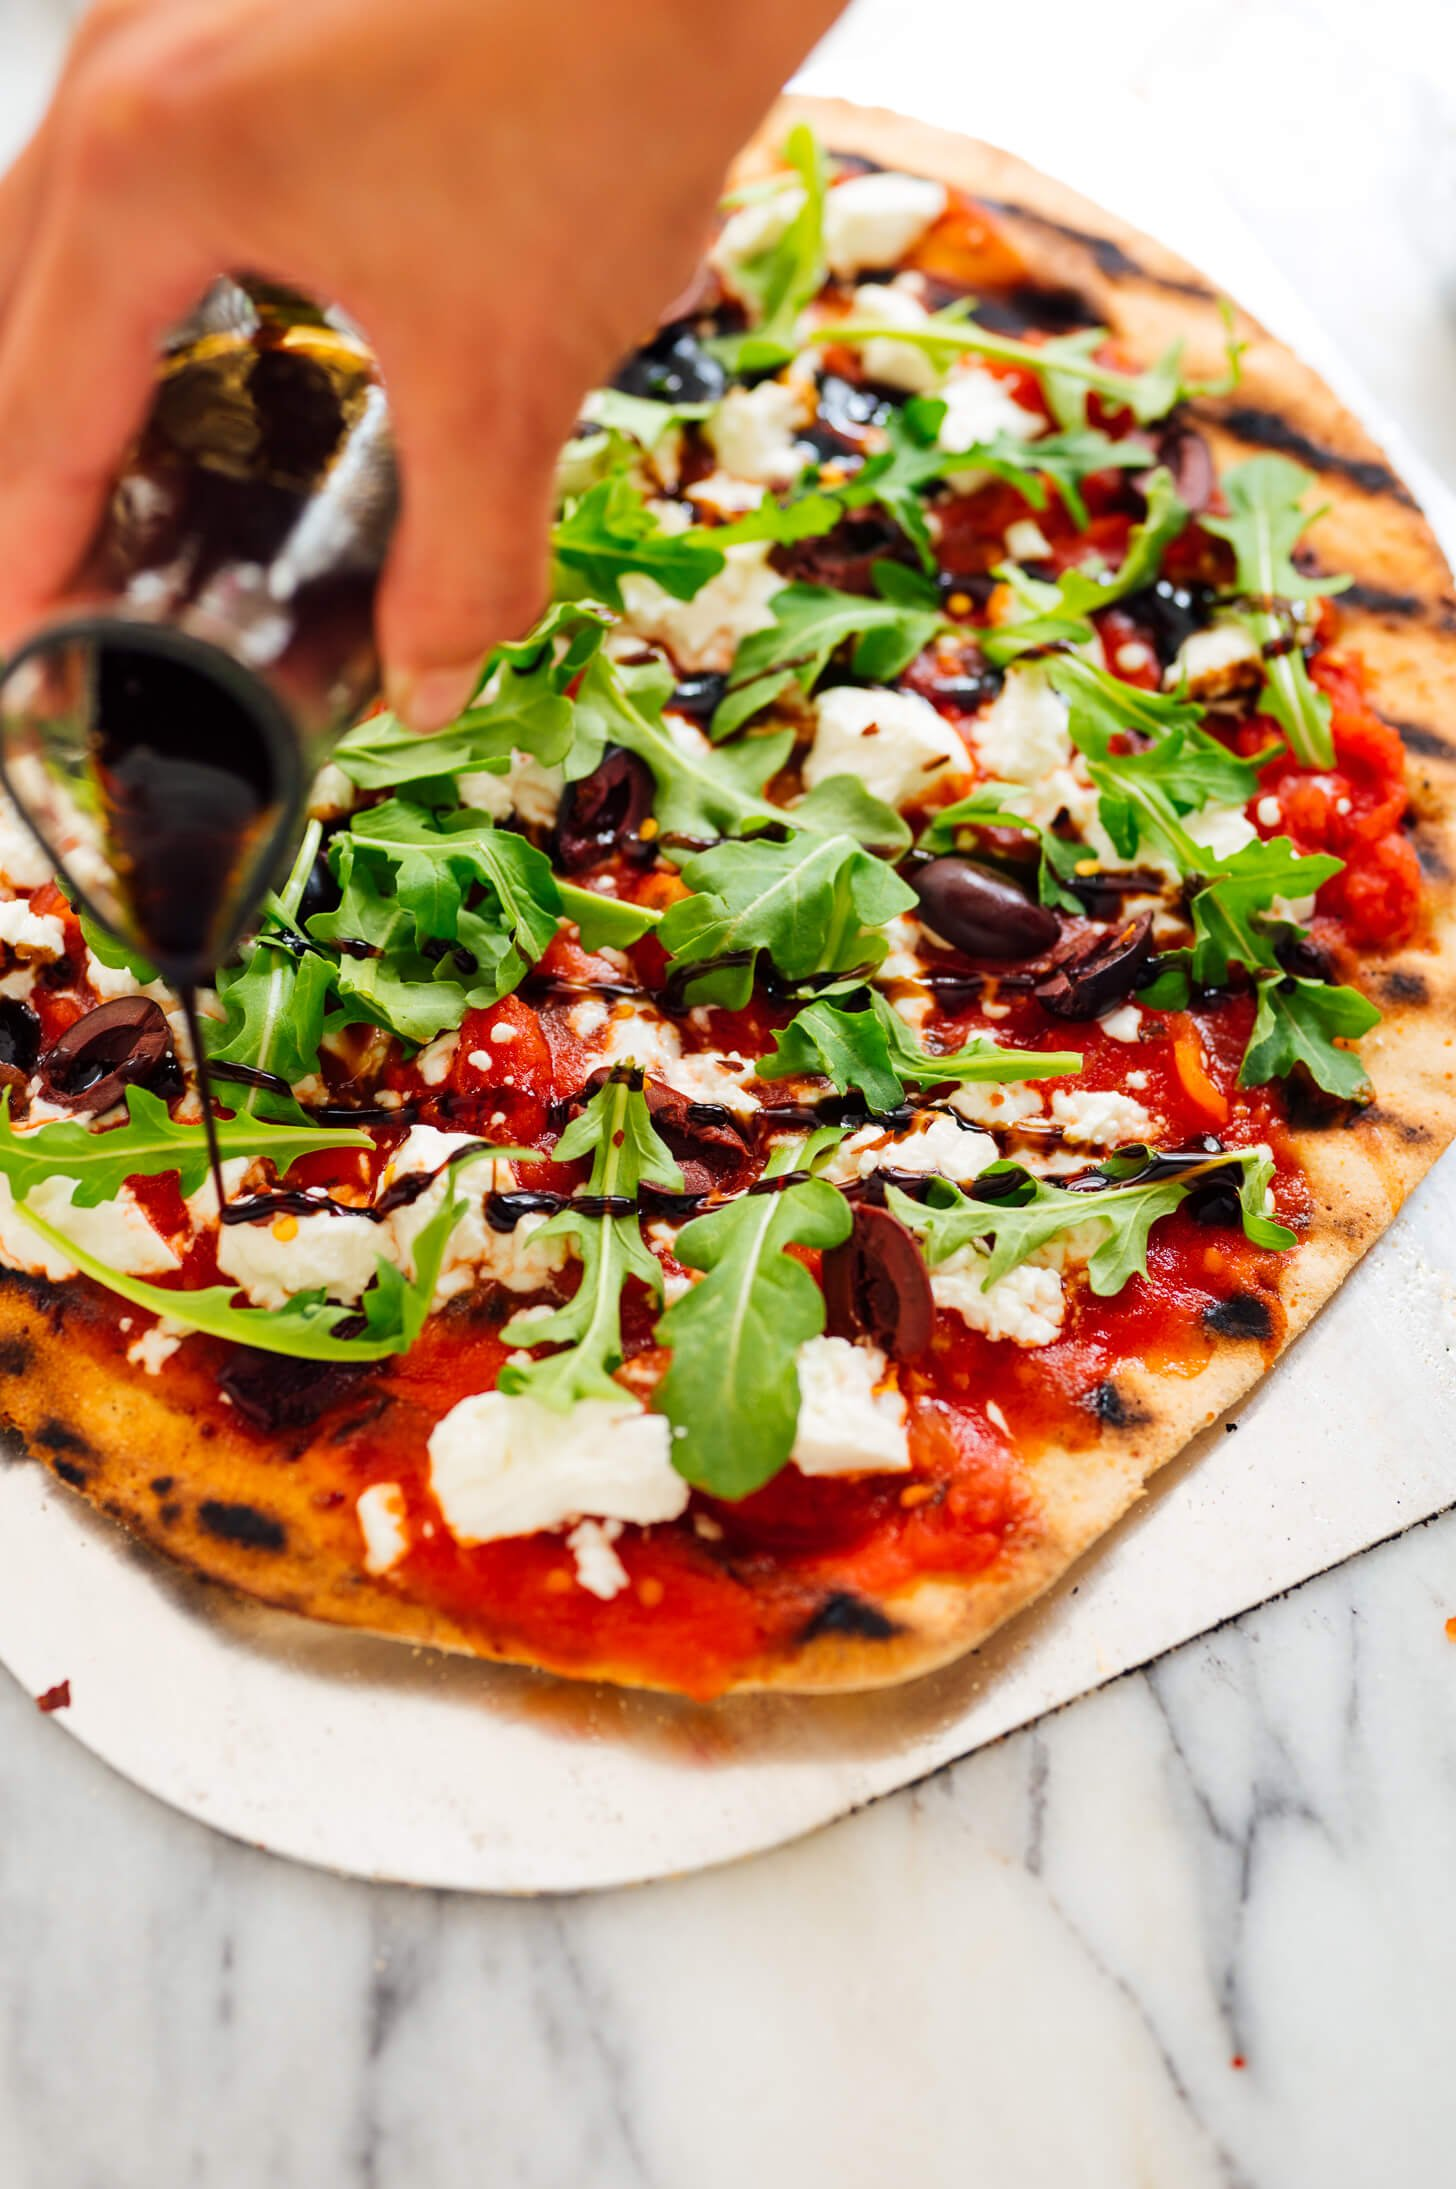 grilled pizza with balsamic drizzle